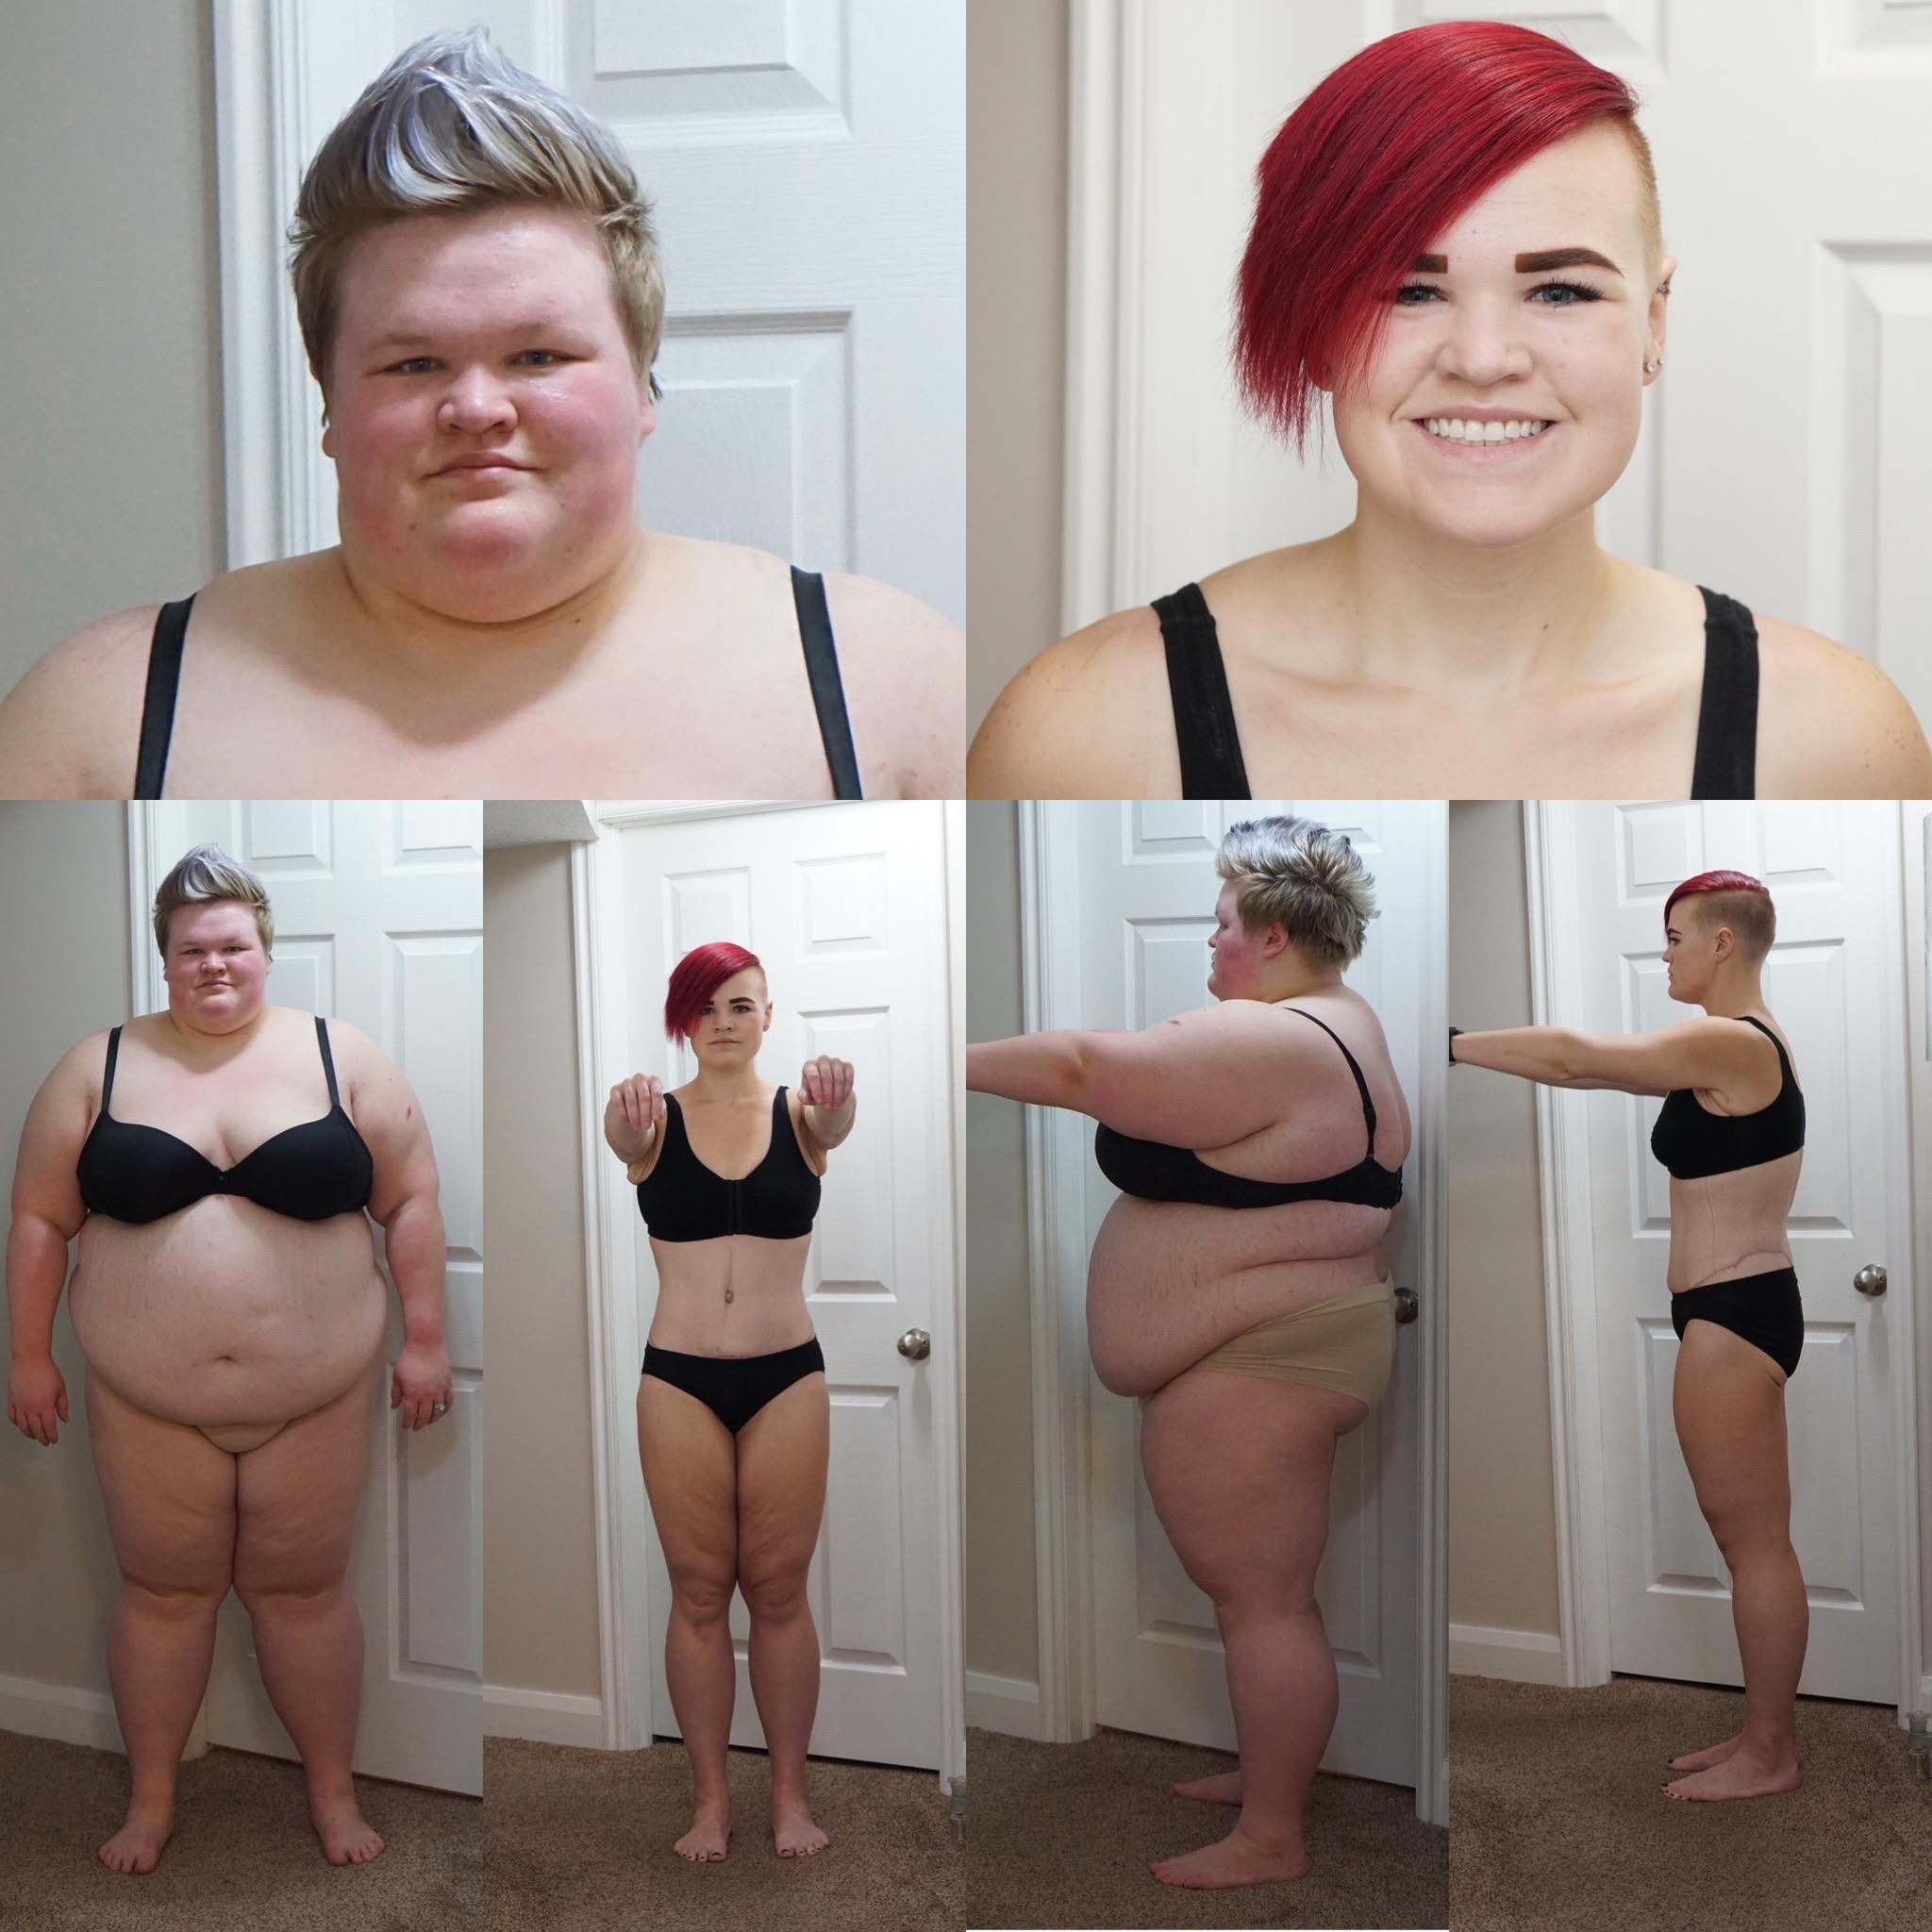 266 lbs Fat Loss Before and After 5 feet 7 Female 436 lbs to 170 lbs